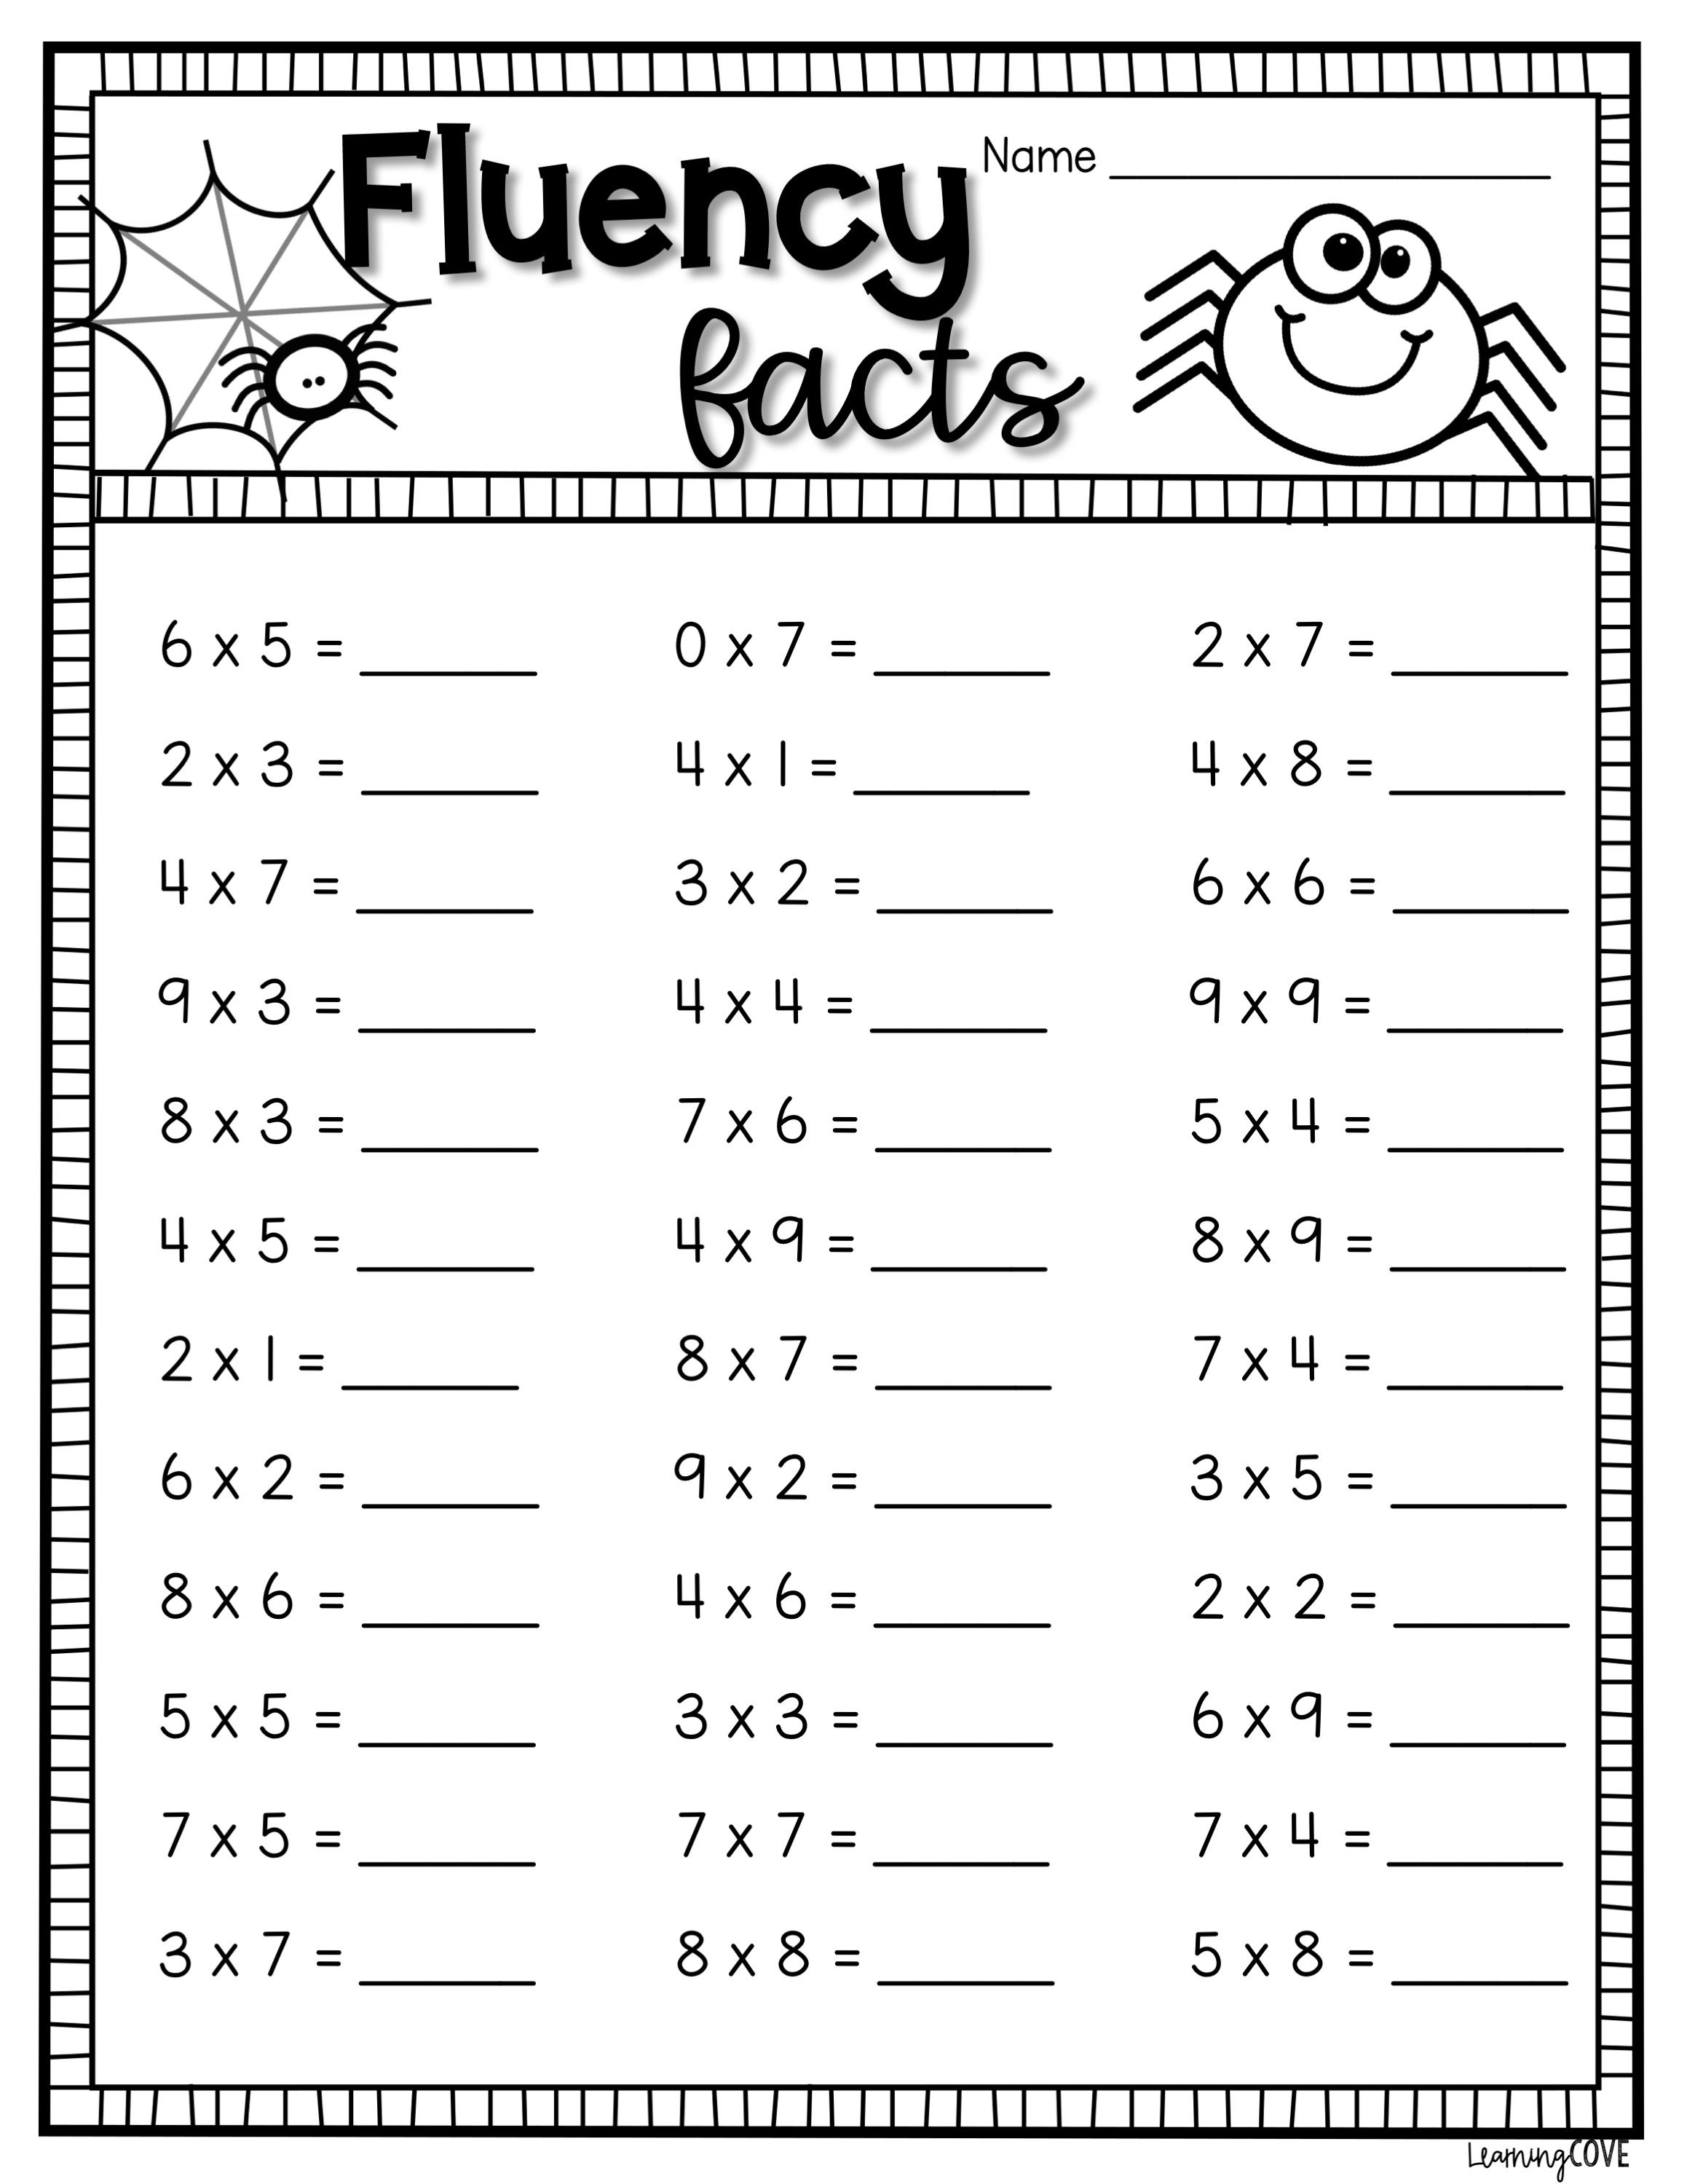 Halloween Math Multiplication Worksheets In